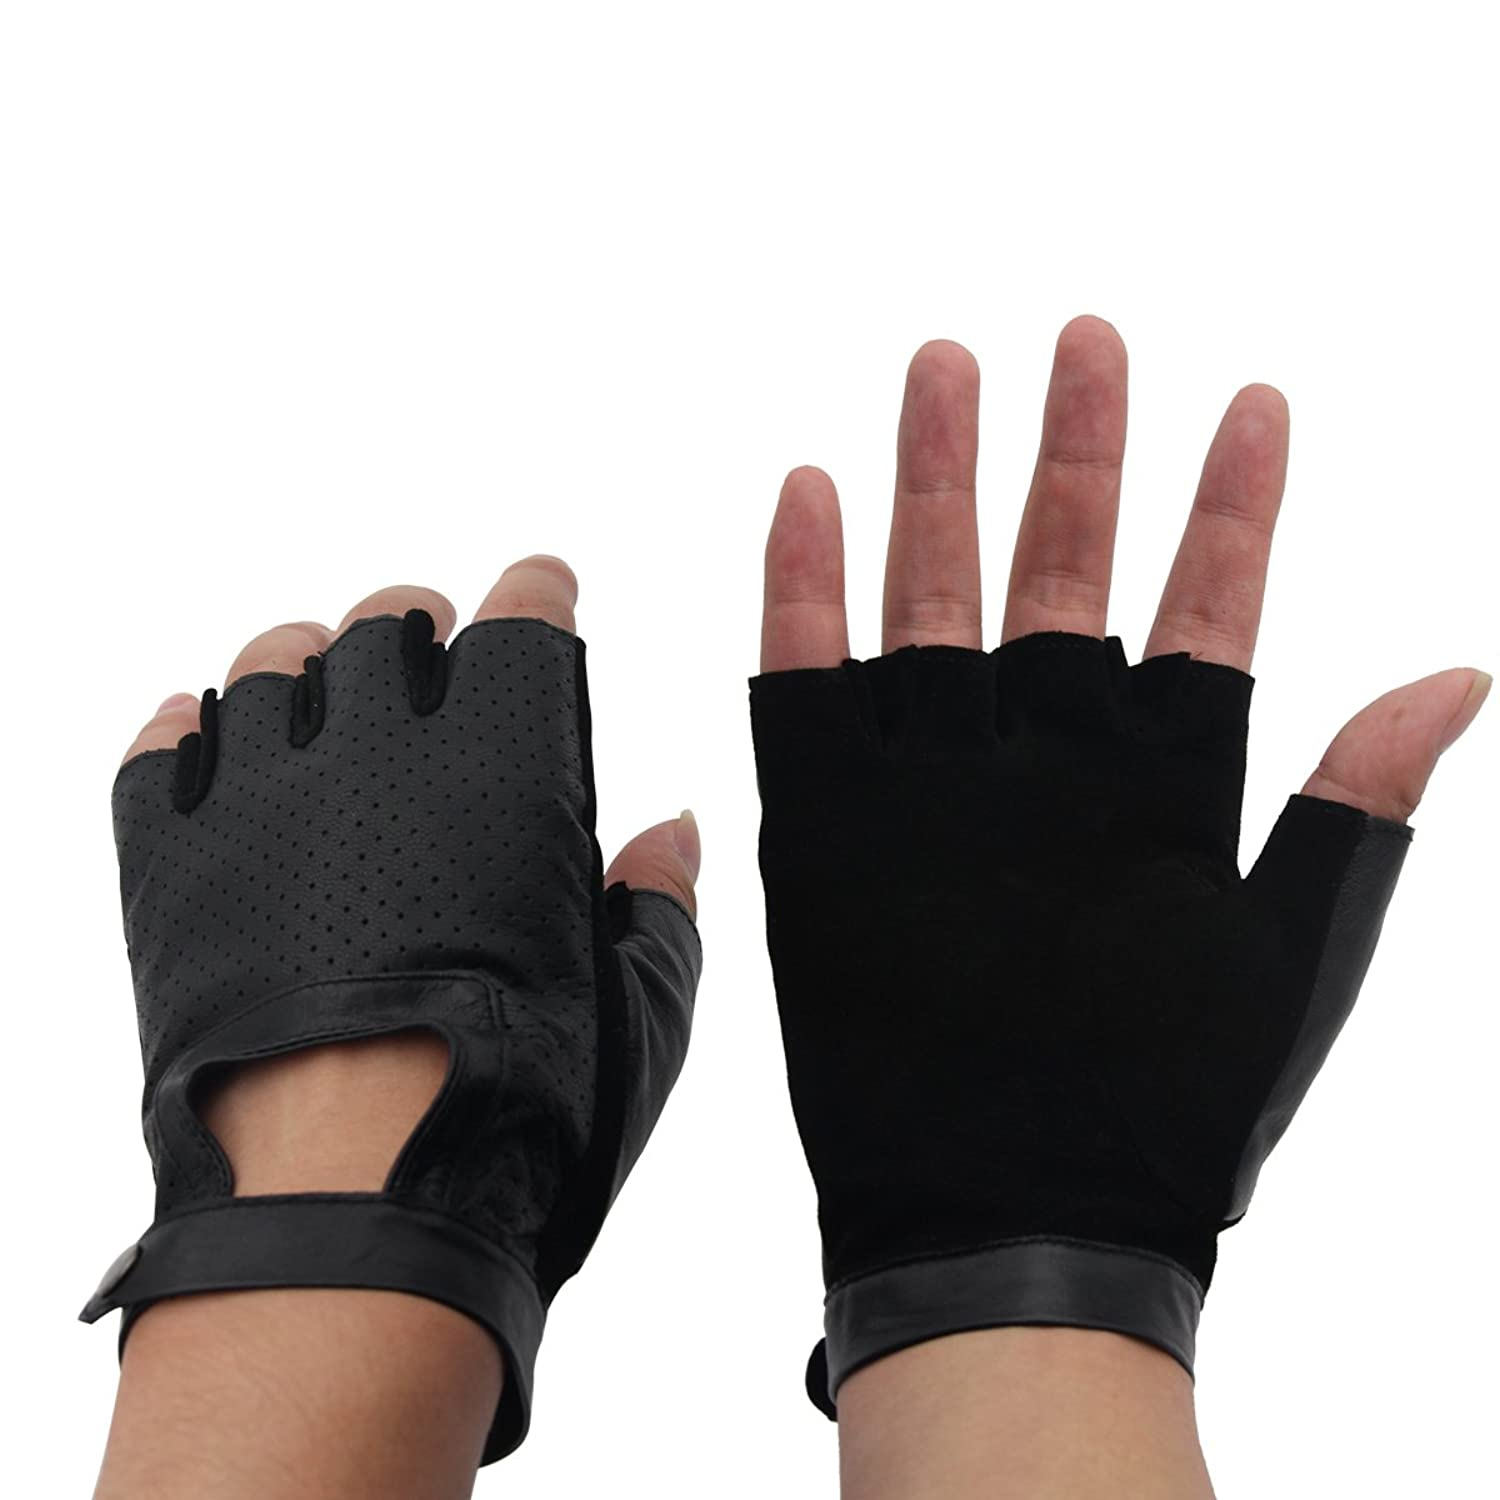 Driving gloves benefits - Evaliana Genuine Leather Sheepskin Fingerless Driving Gloves Motorcycle Biker